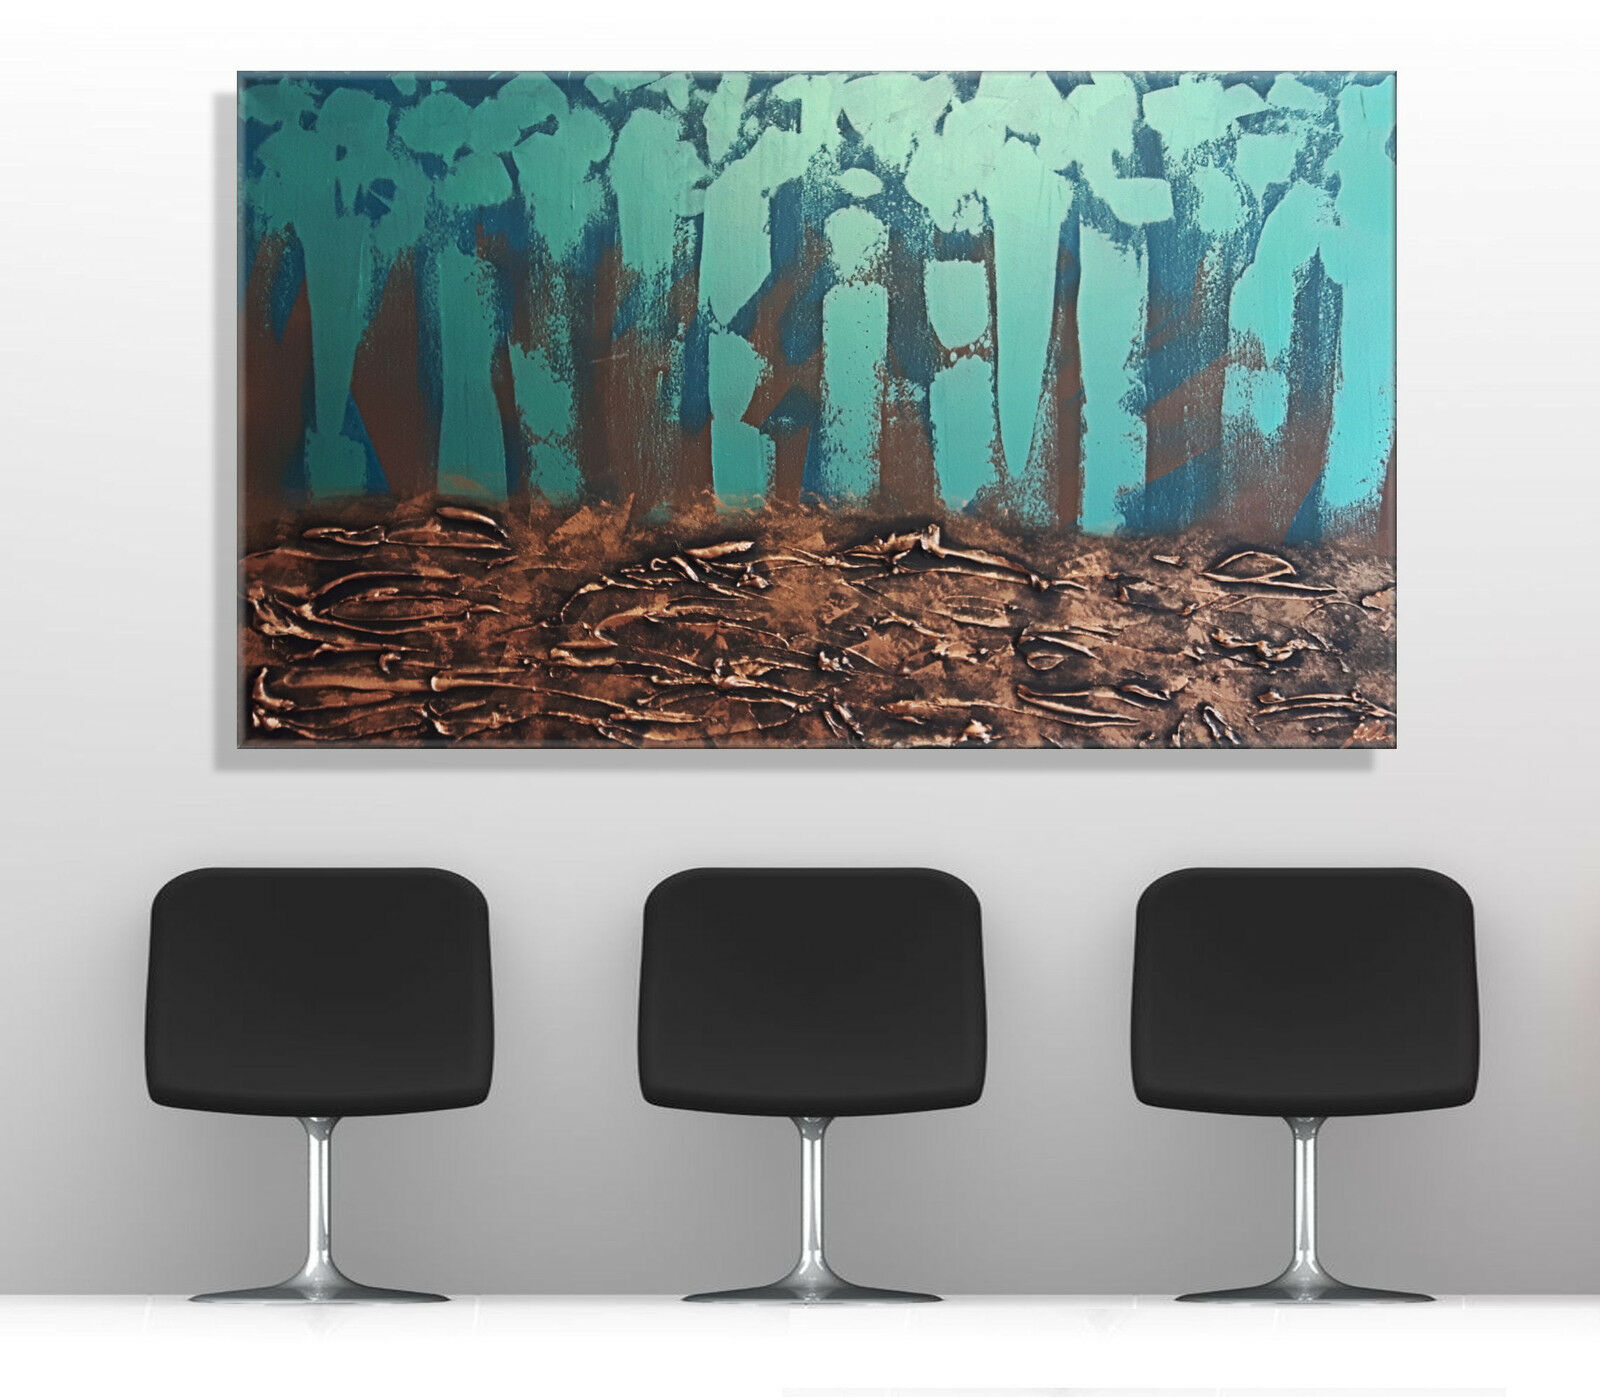 mk1 art bild leinwand abstrakt gem lde kunst bilder malerei t rkis braun xxl eur 439 00. Black Bedroom Furniture Sets. Home Design Ideas